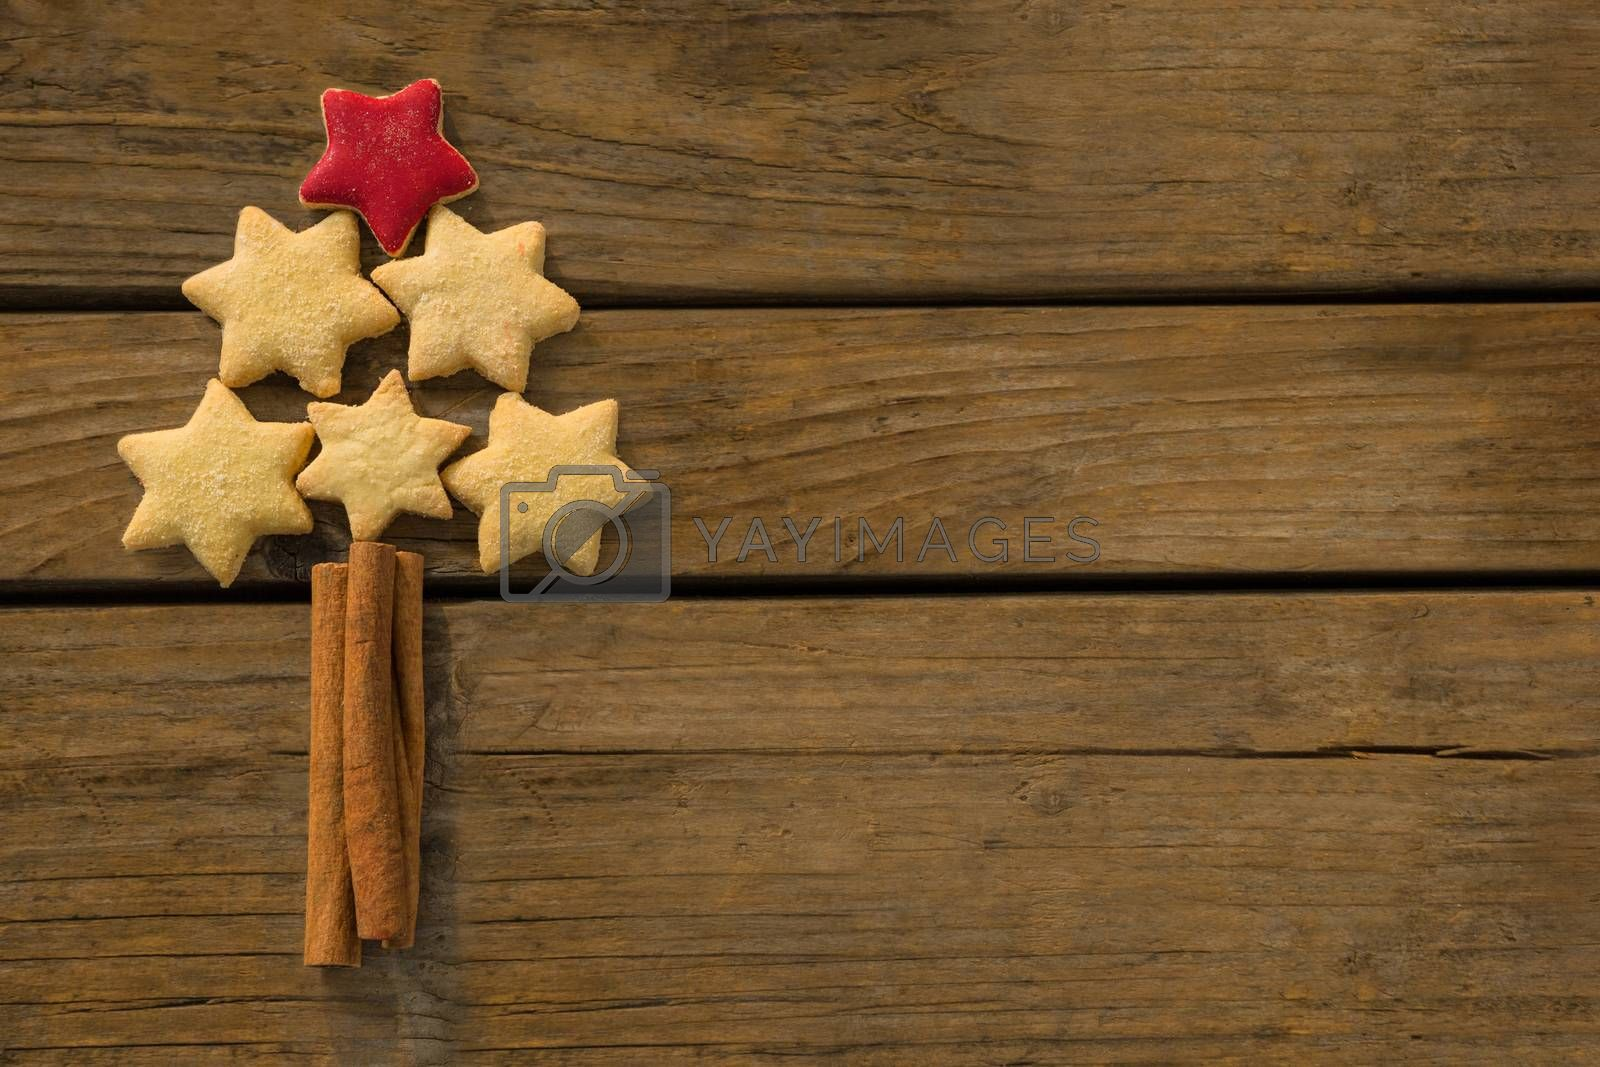 Close up of Christmas tree made with star shape cookies and cinnamon sticks by Wavebreakmedia